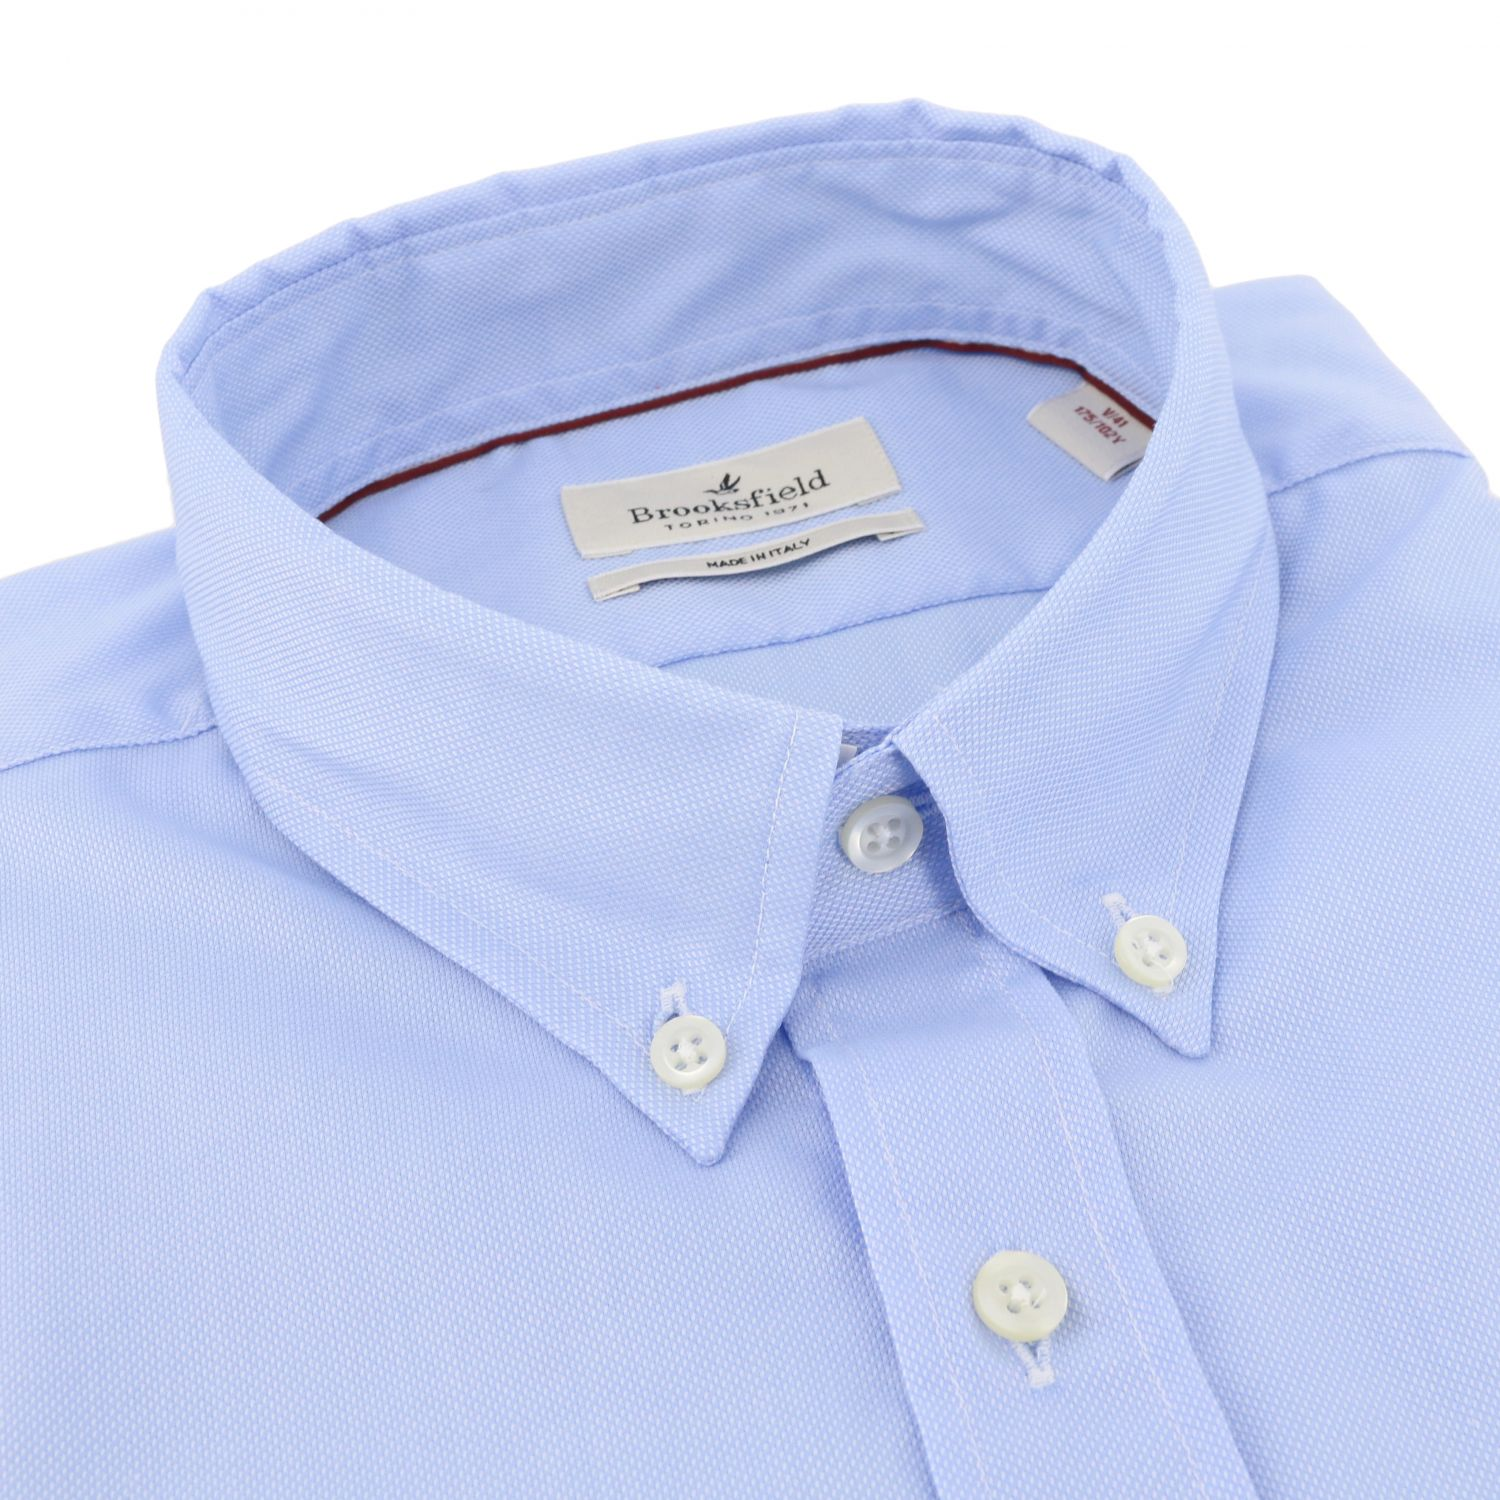 Shirt Brooksfield: Shirt men Brooksfield gnawed blue 2